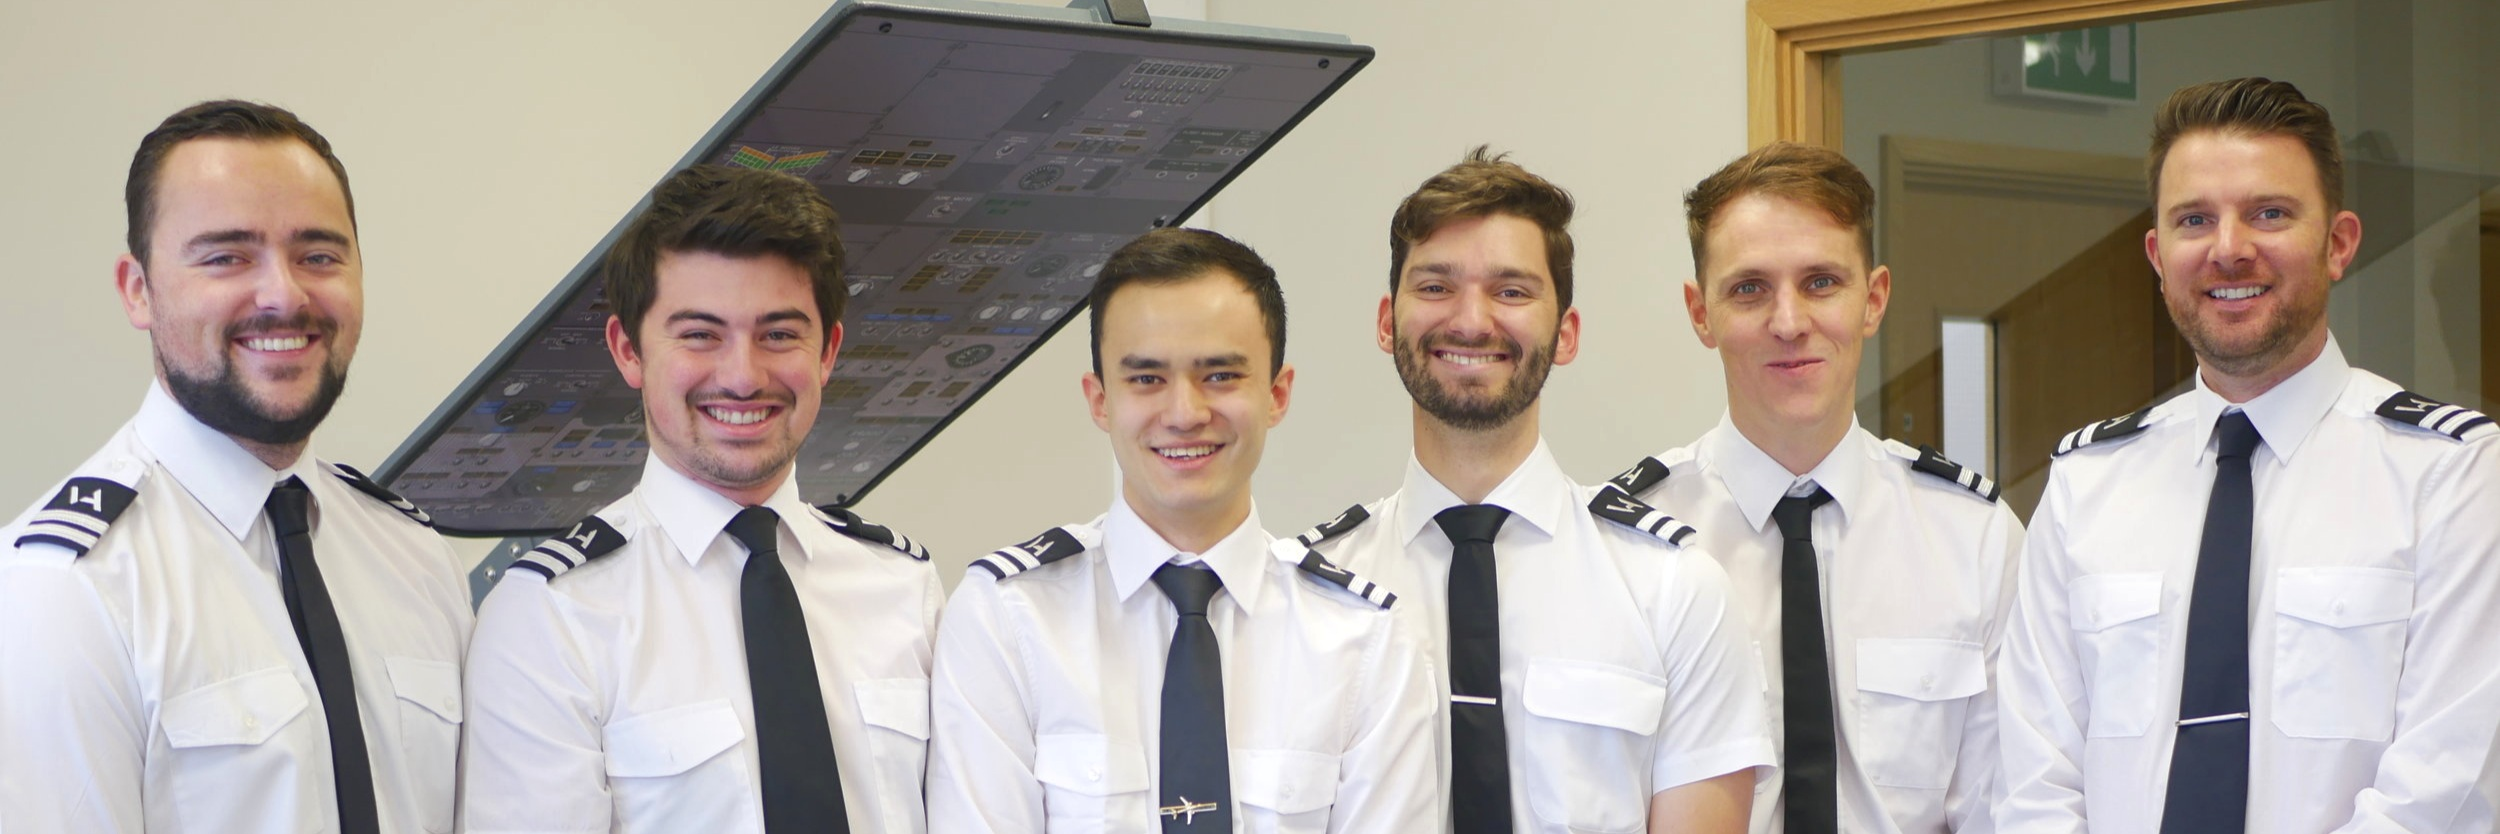 APS MCC class 1822 have all secured a job. From left to right - James (Flybe), Scott (Ryanair), Ken (Ryanair), Thomas (Flybe), Matthew (Ryanair), Luke (Ryanair).